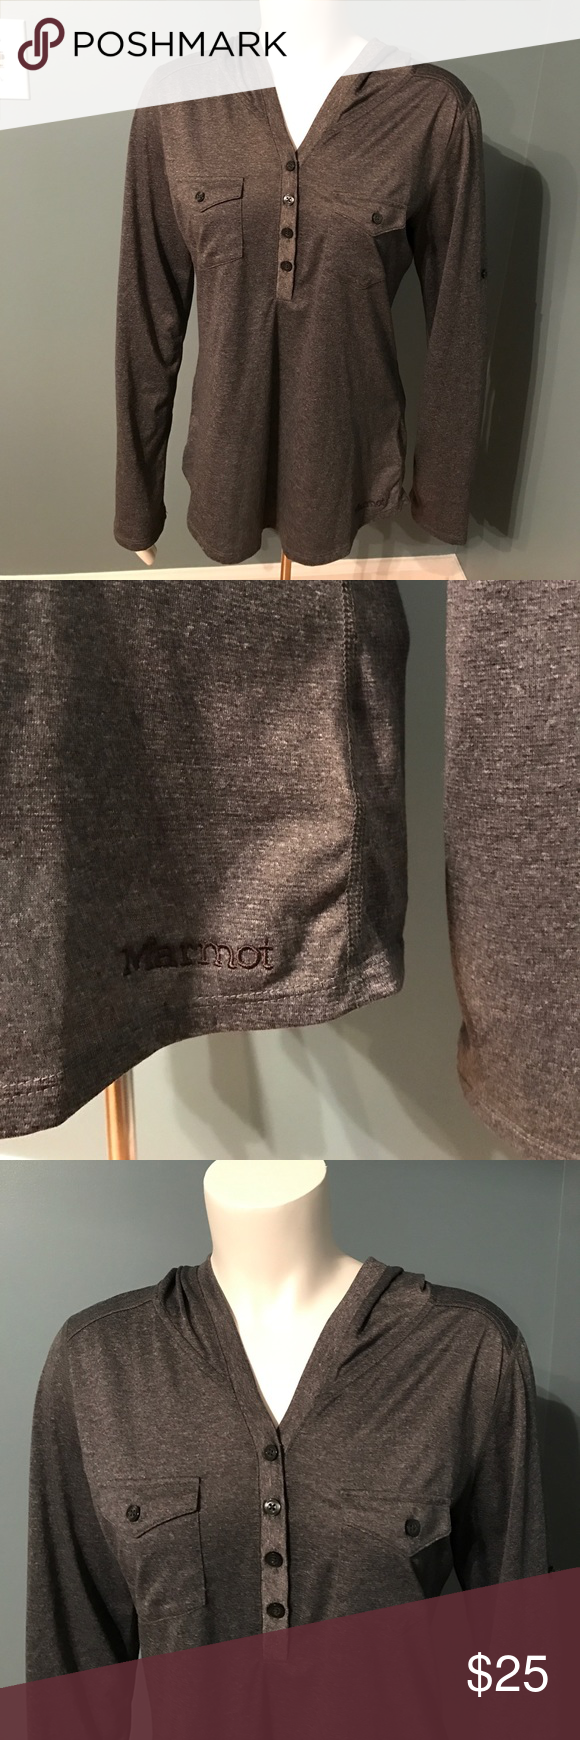 Marmot Laura long sleeve hooded gray shirt medium Lightweight and soft. Perfect for outdoor activities when you want coverage. Size medium. Charcoal gray. Pockets on both sides of chest. Button front. Sleeves roll up and secure with button closure Marmot Tops Tees - Long Sleeve